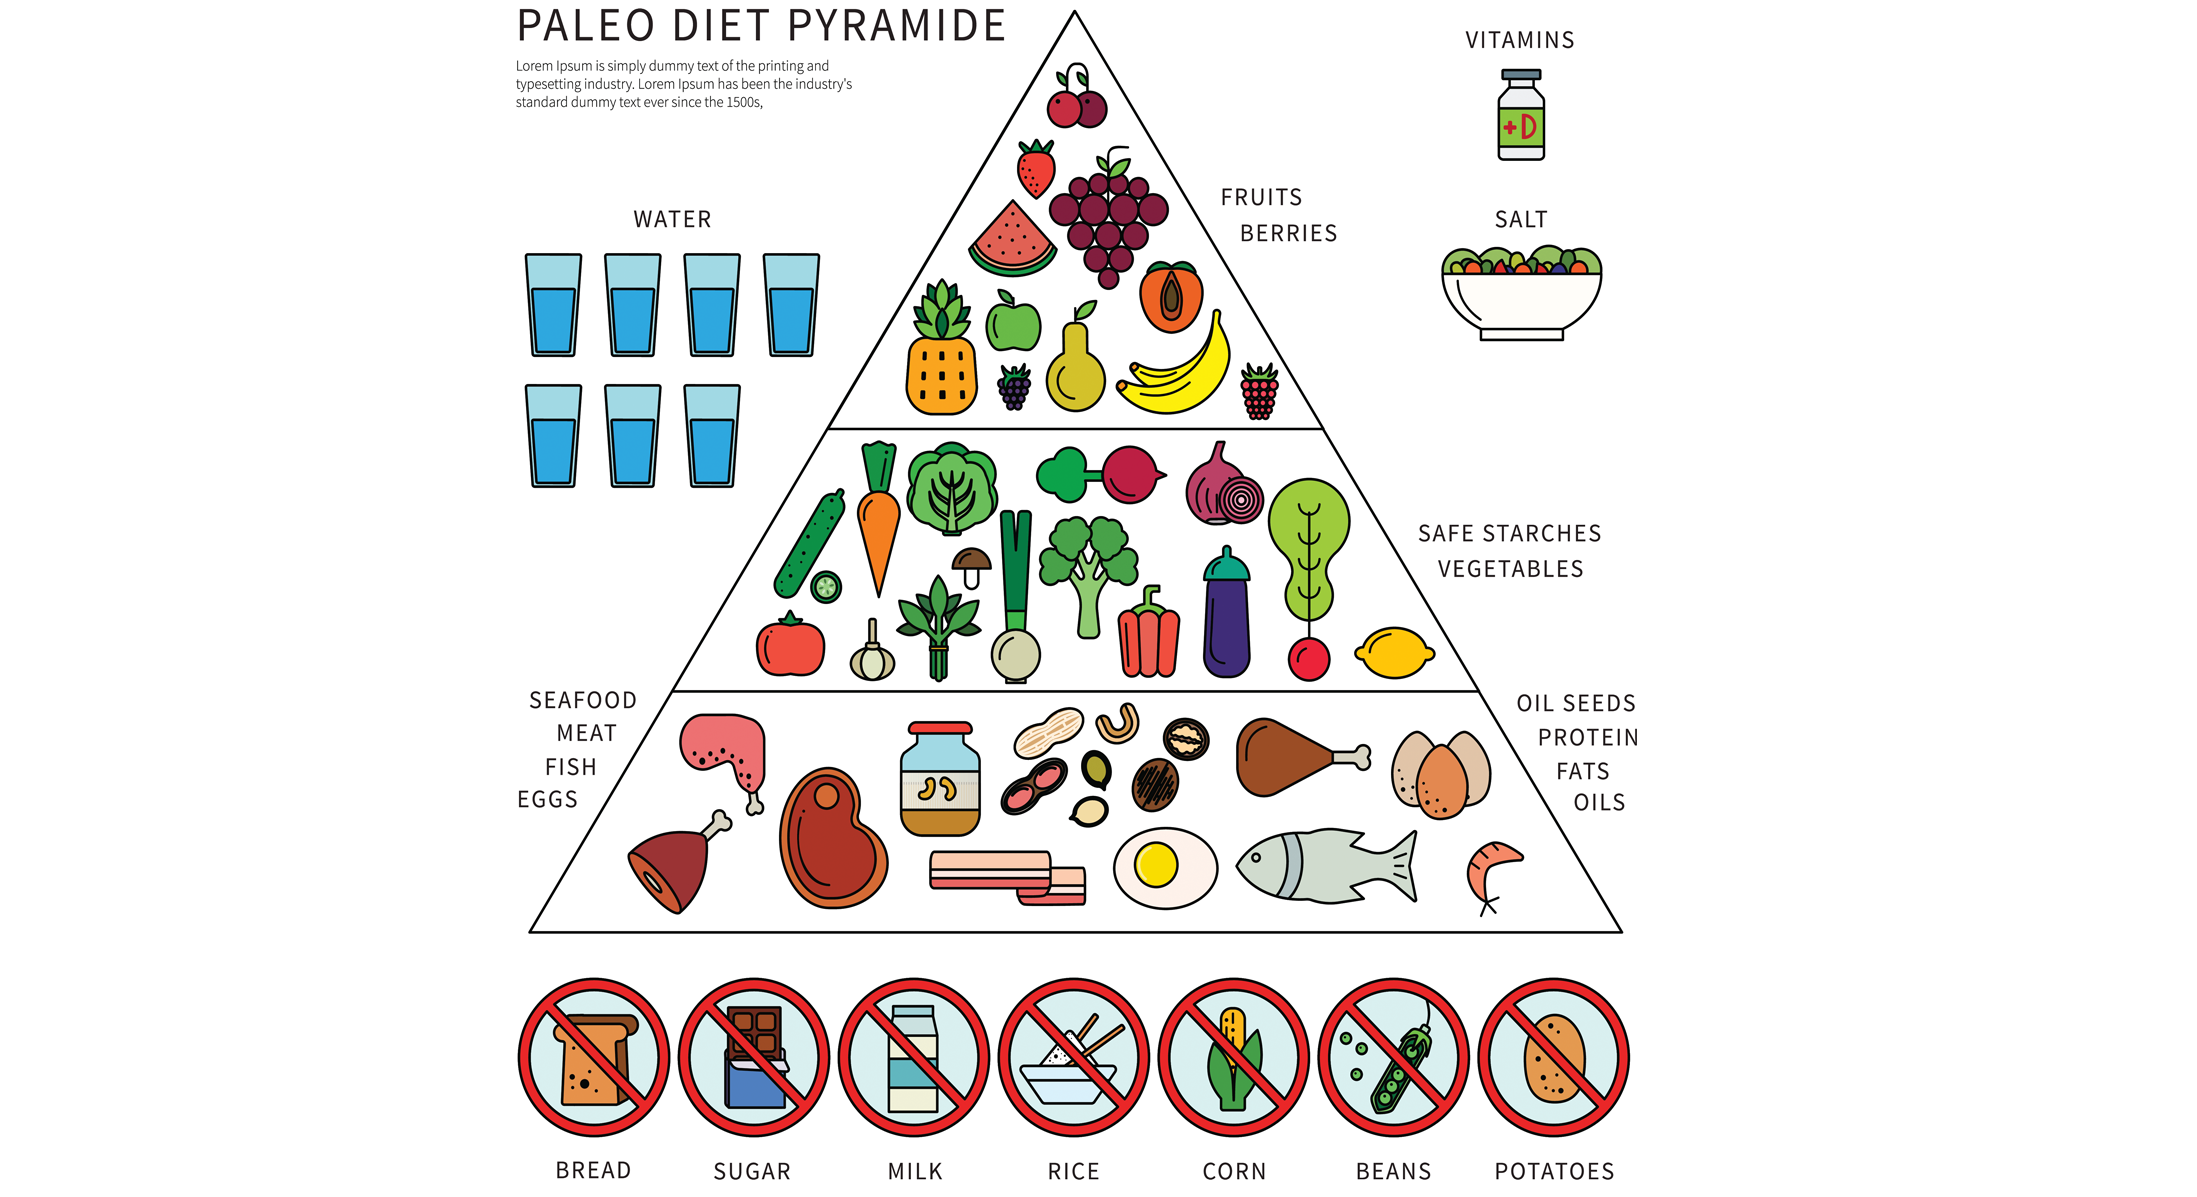 negative effects of paleo diet